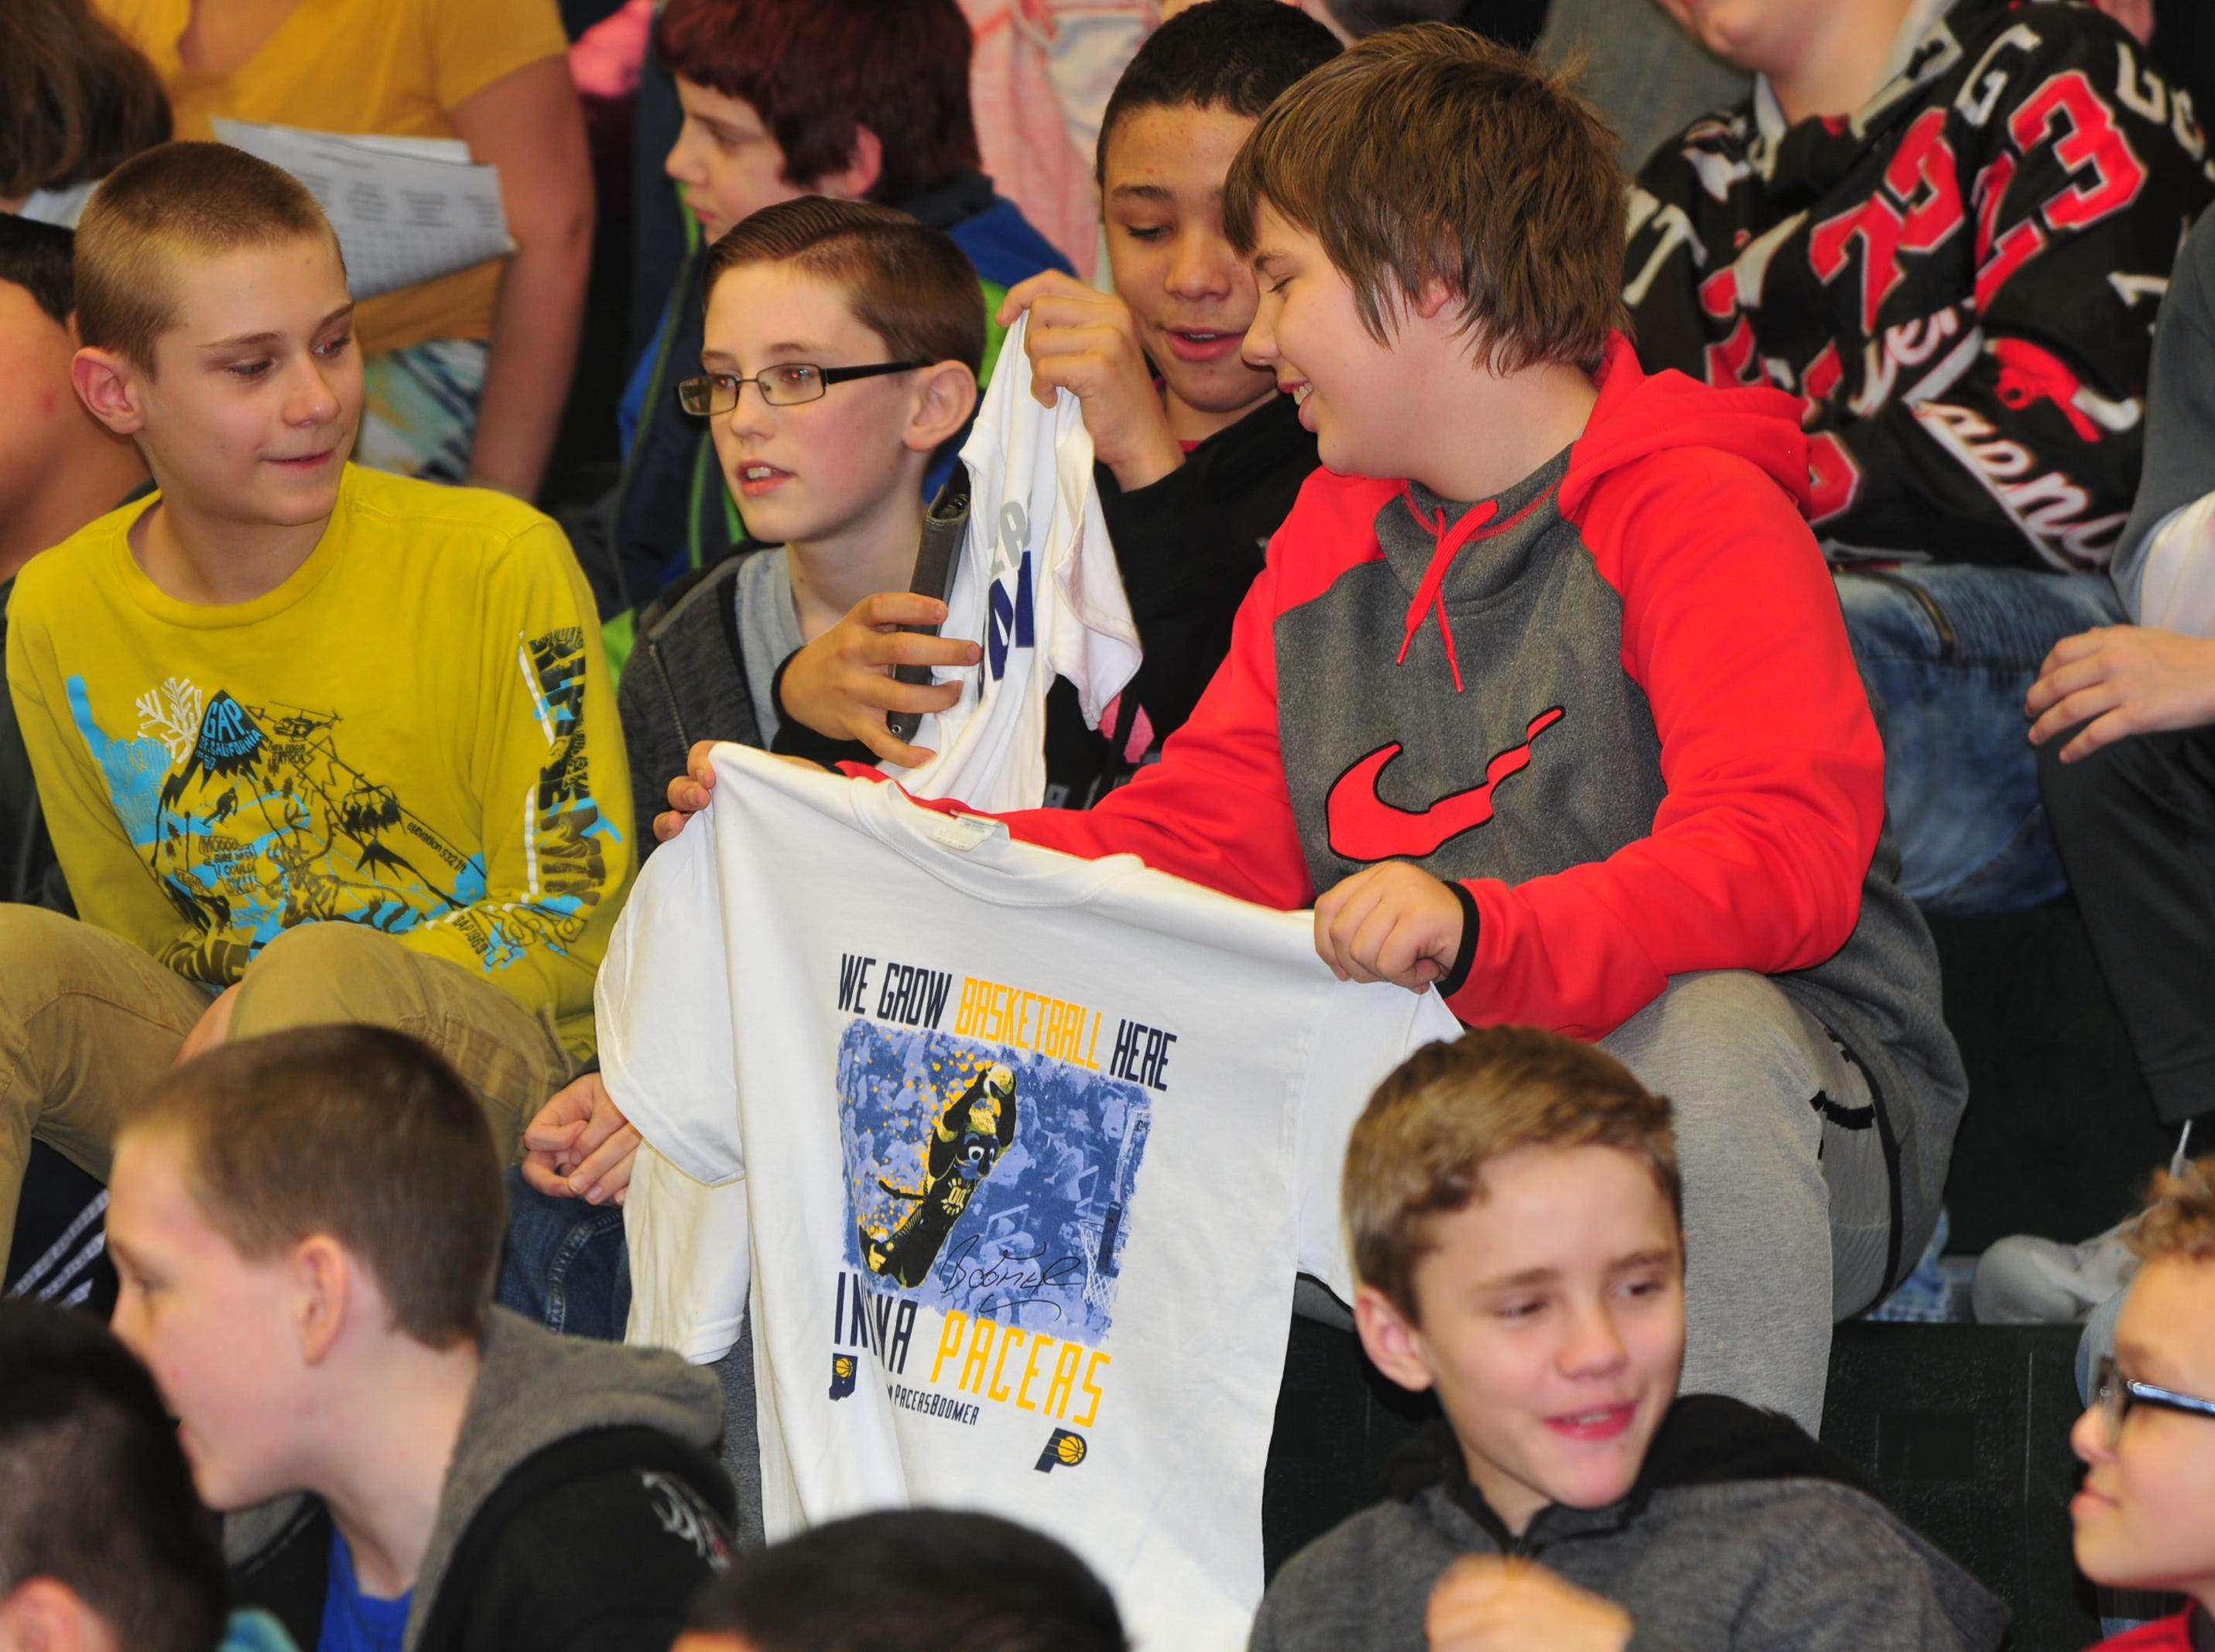 Dennis Intermediate School students check out T-shirts tossed into the stands Wednesday.